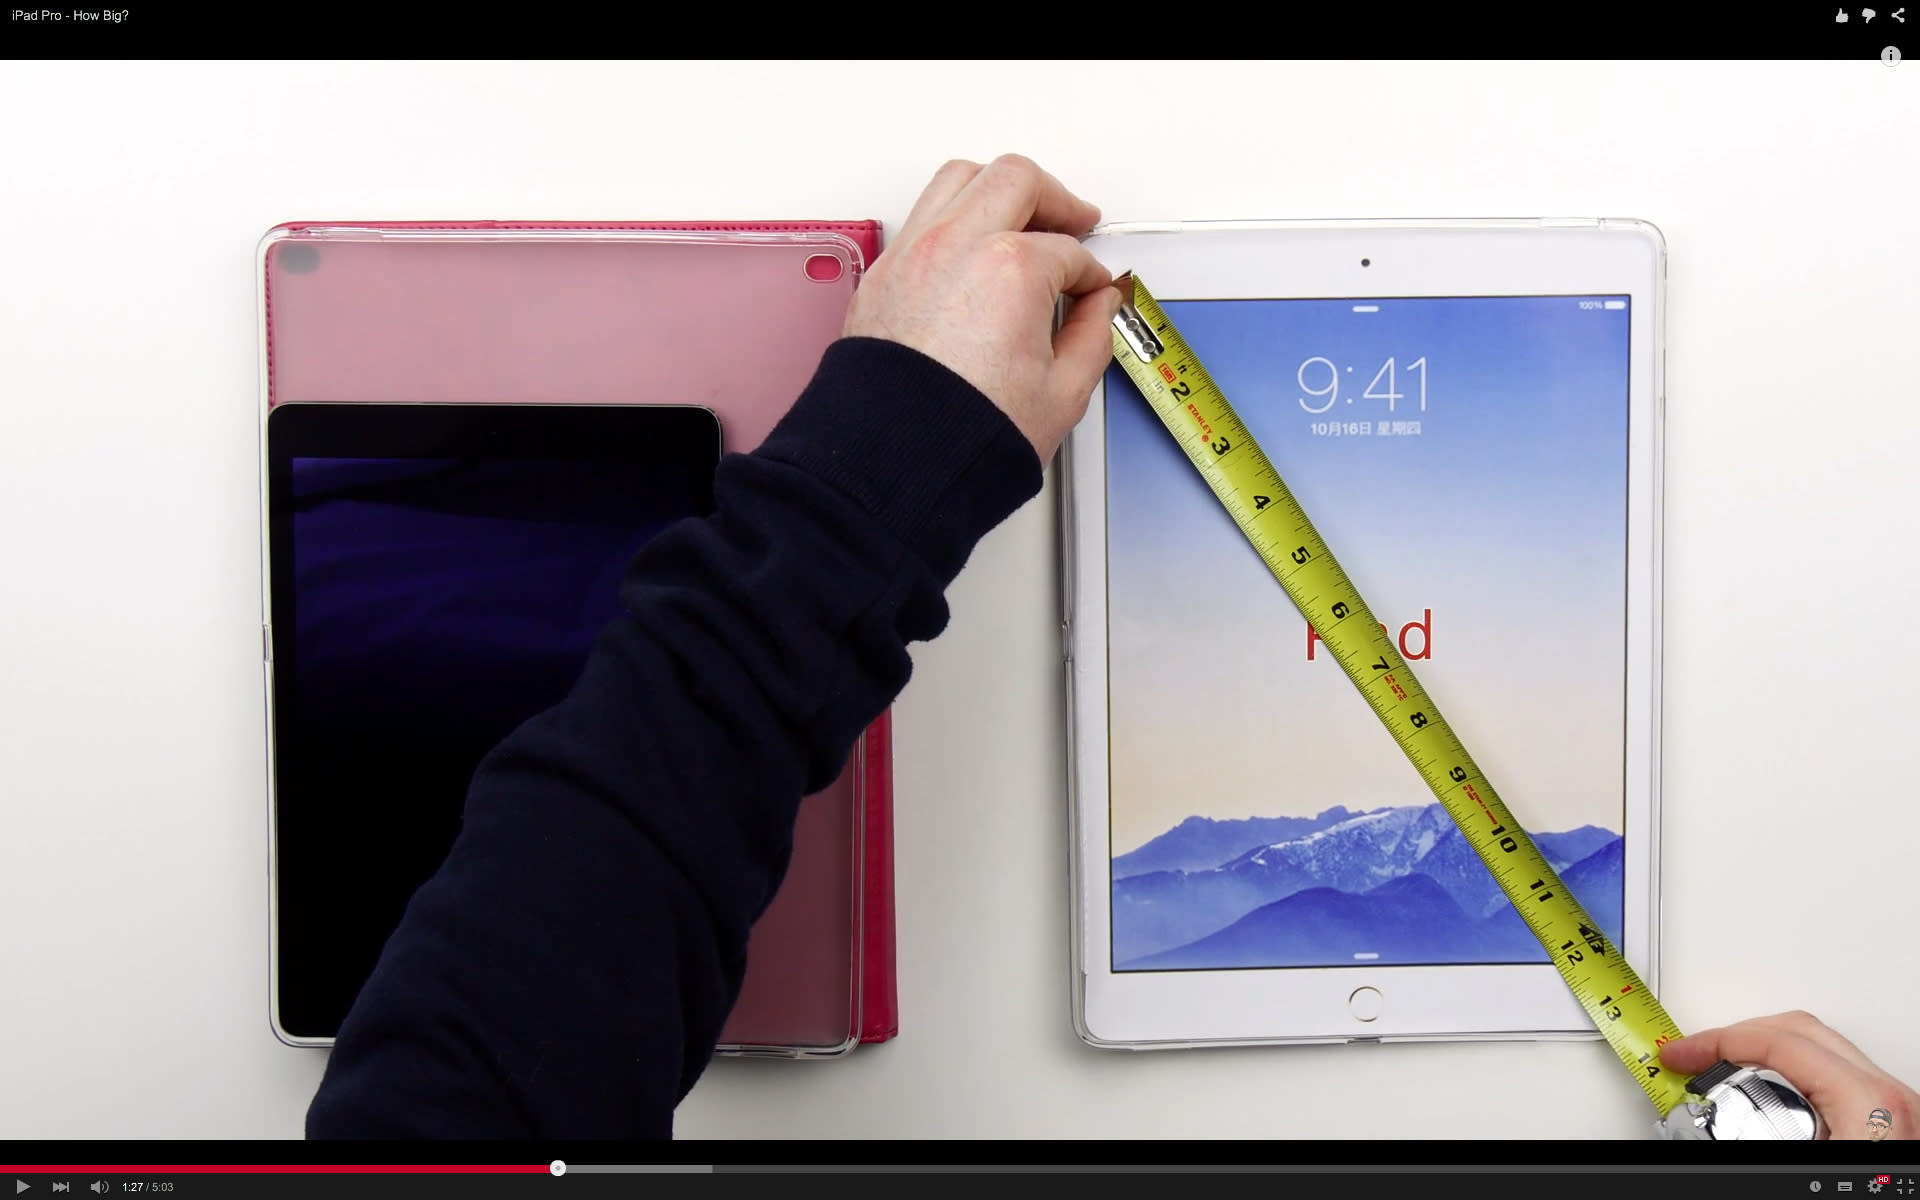 The next iPad could have a 12.9-inch display